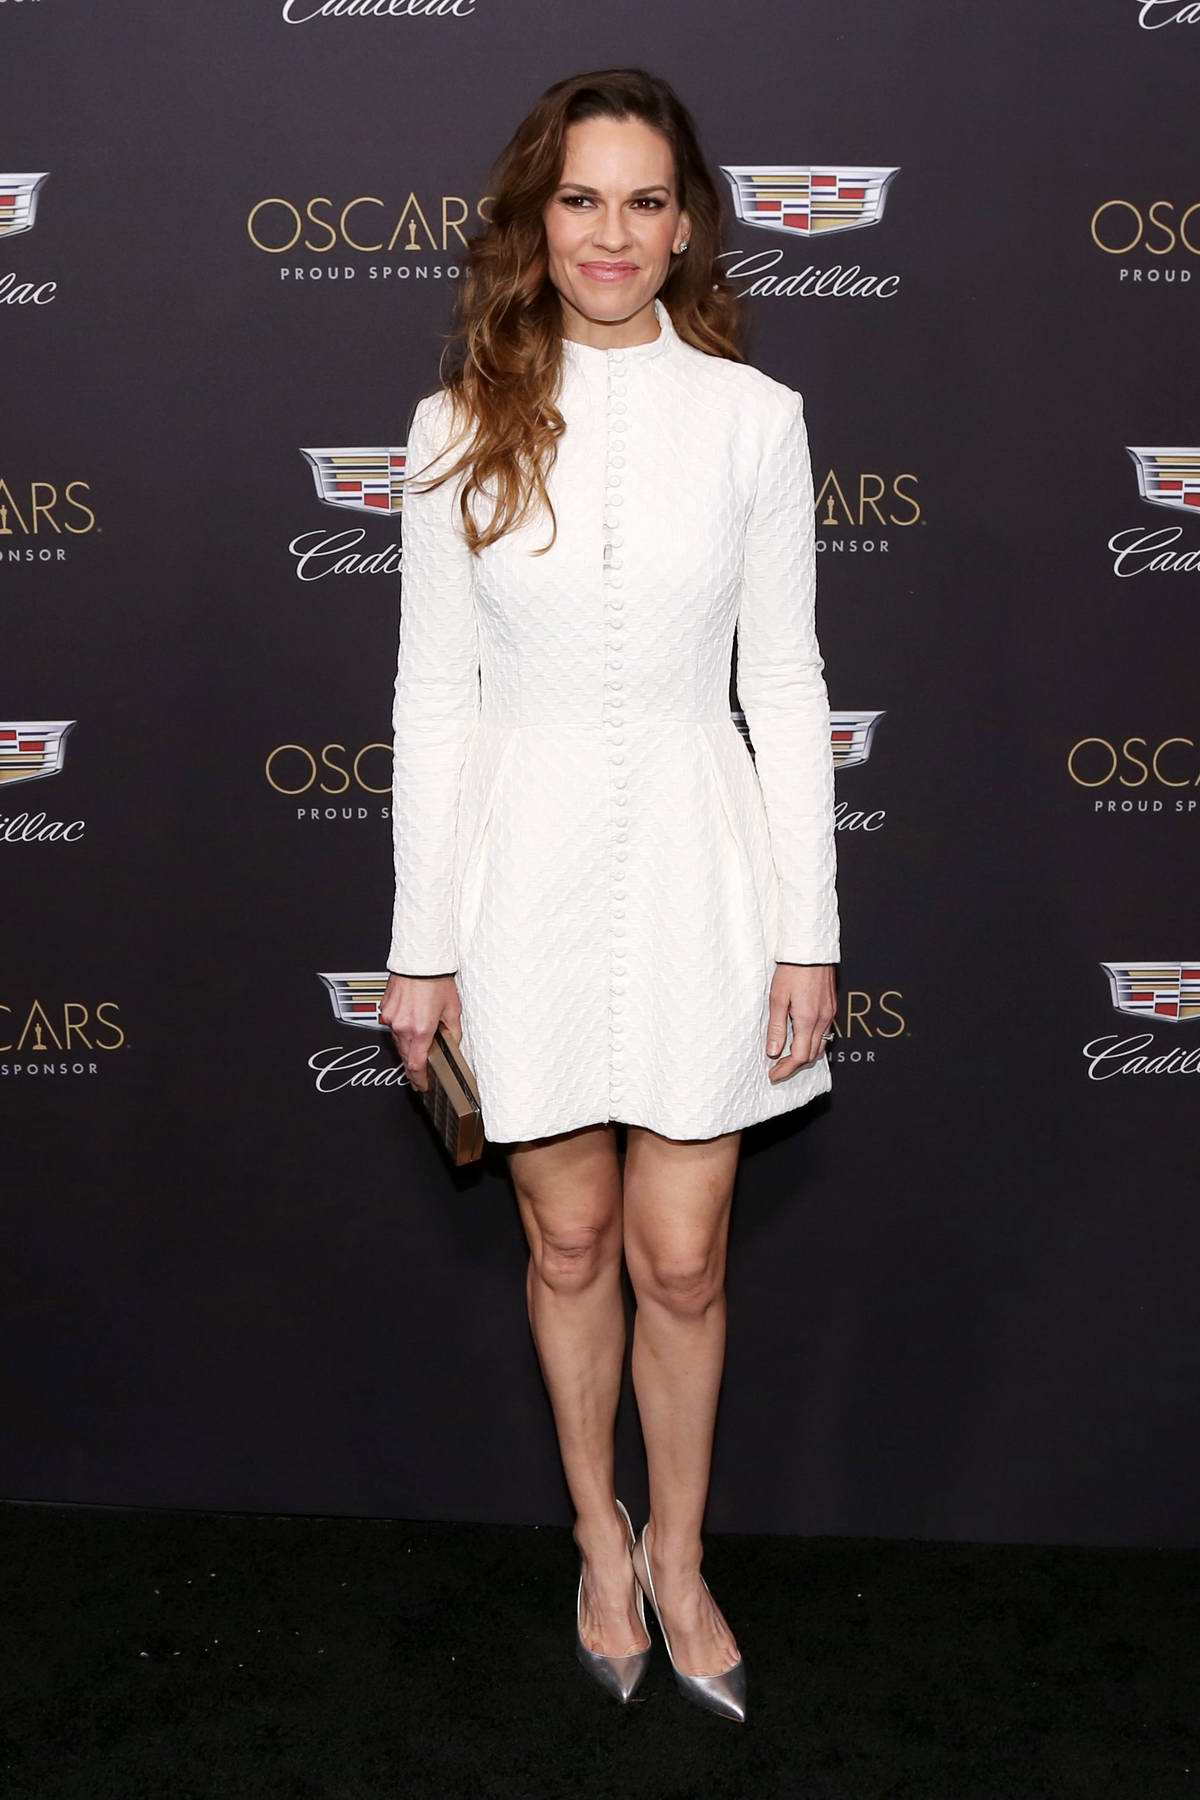 Hilary Swank attends Cadillac Celebrates The 91st Annual Academy Awards held at the Chateau Marmont in West Hollywood, Los Angeles